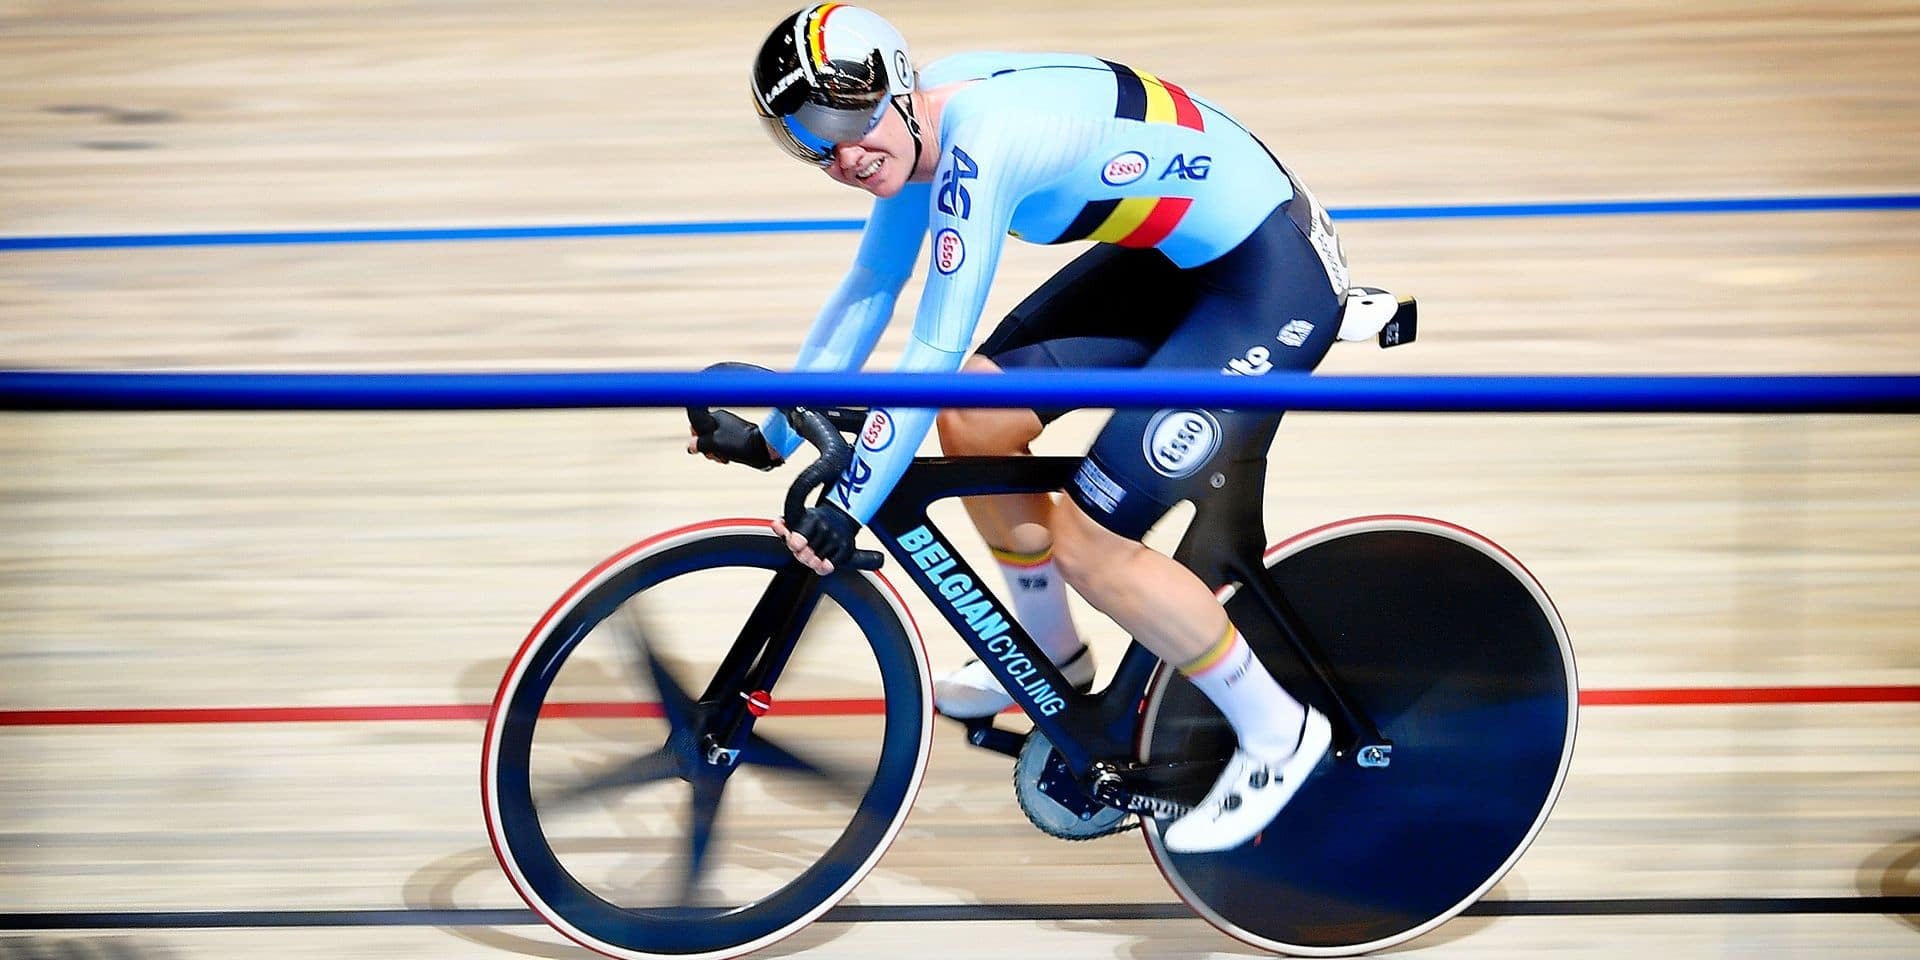 Belgian Jolien D'Hoore pictured in action during the women's Point's Race event at the 2018 world championships track cycling in Apeldoorn, the Netherlands, Sunday 04 March 2018. The track cycling worlds take place from 28 February to 04 March. BELGA PHOTO YORICK JANSENS